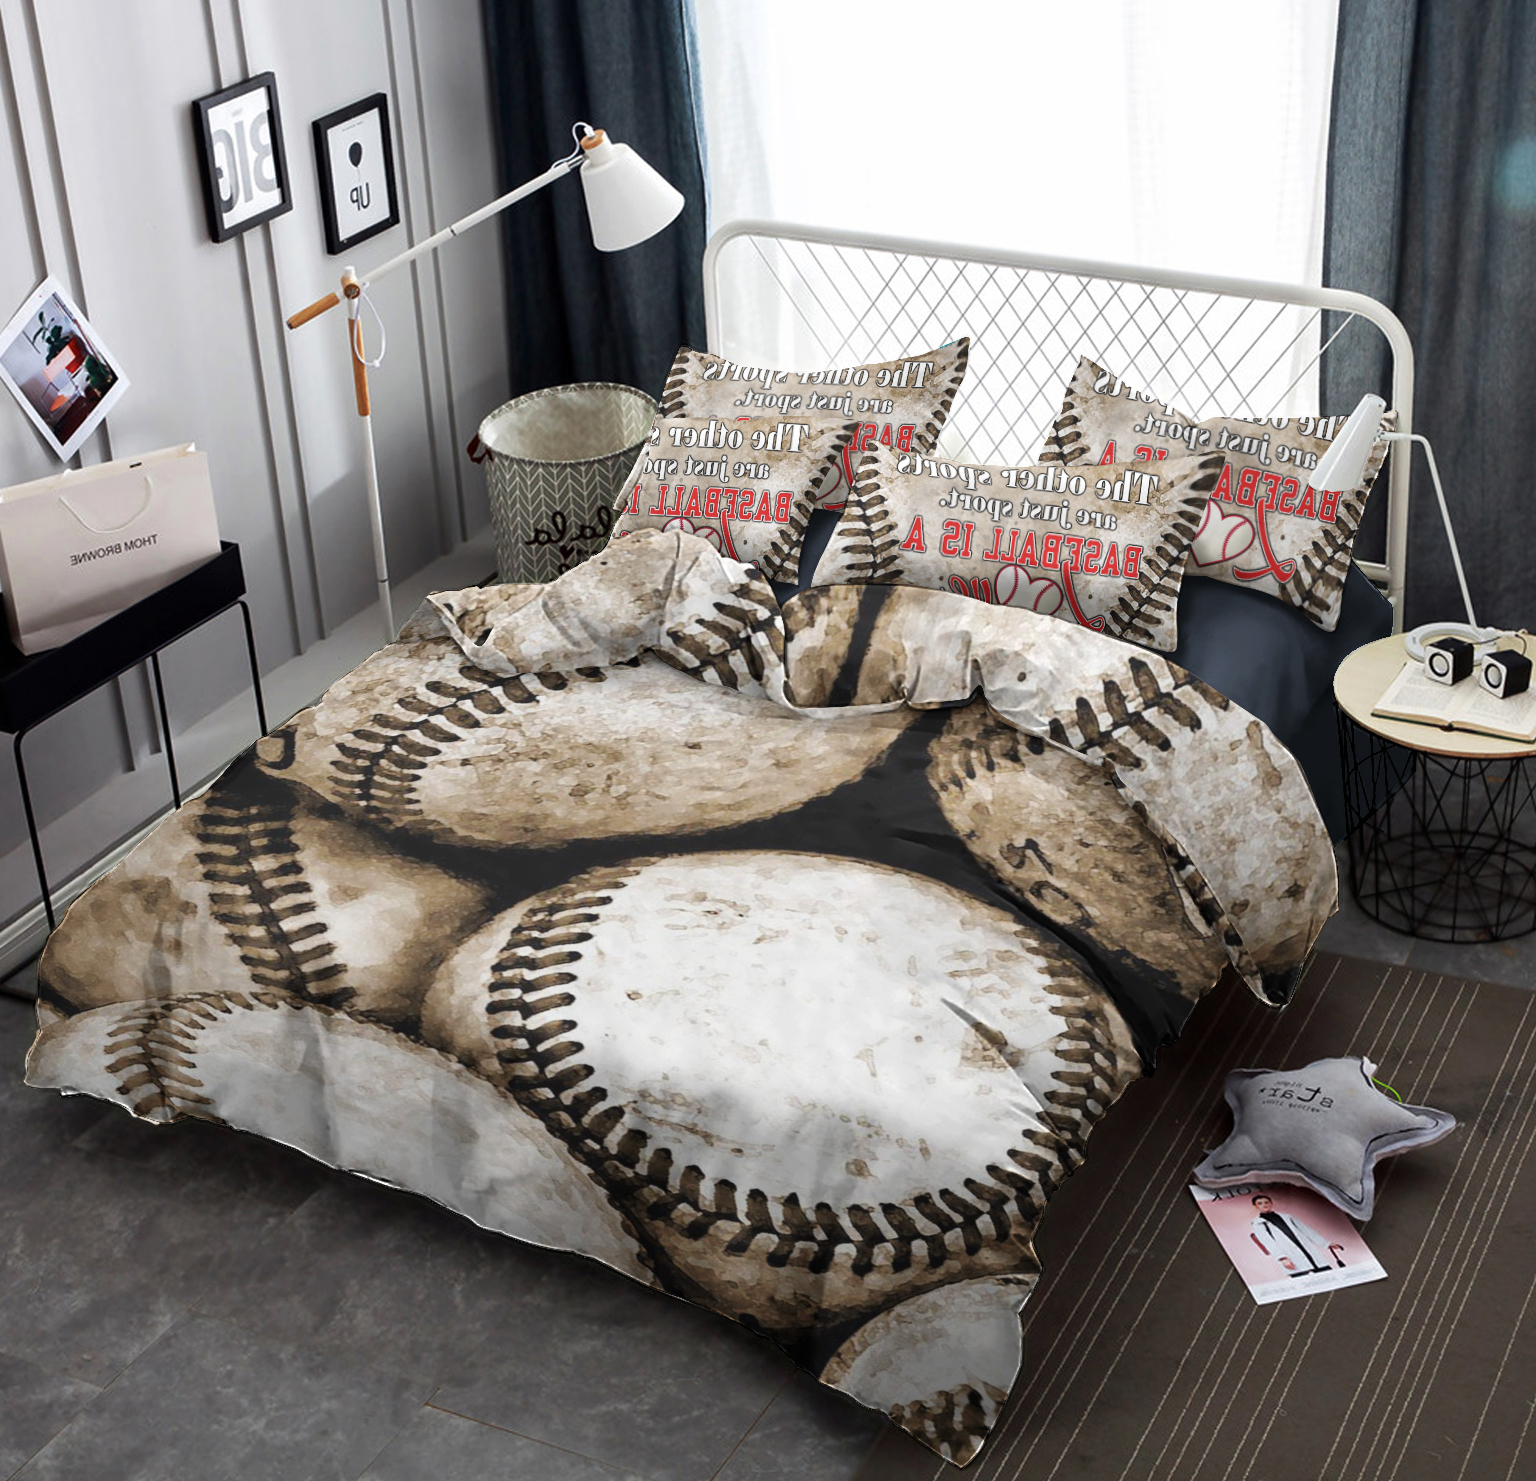 Well Known Baseball Tl300704b Tdt Bedding Sets – Kaylee And Tepid With Regard To Complete Cottage Curtain Sets With An Antique And Aubergine Grapvine Print (View 6 of 20)